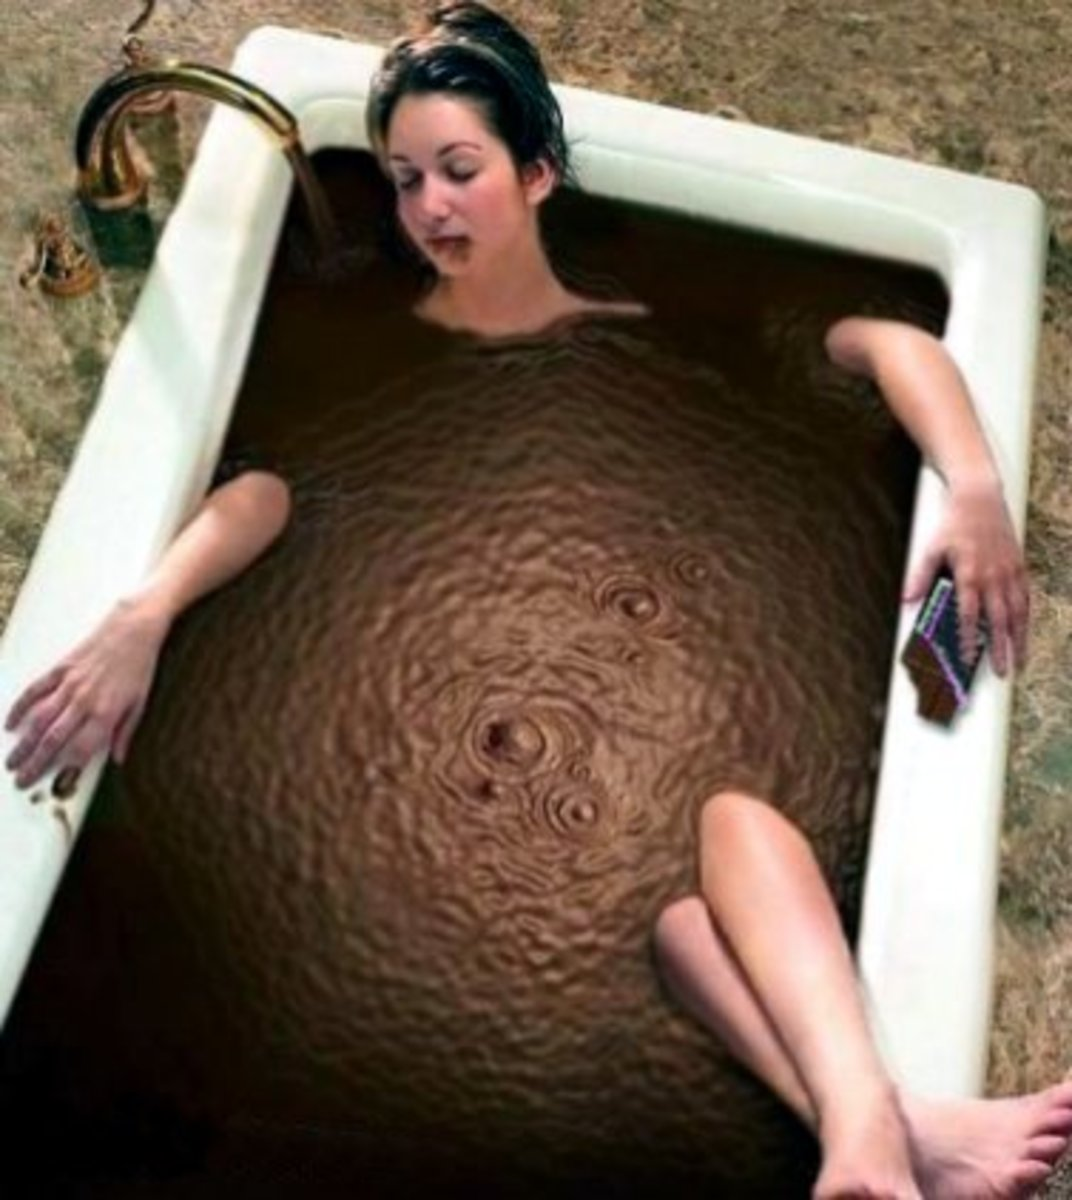 Make that bath with extra cocoa, please!